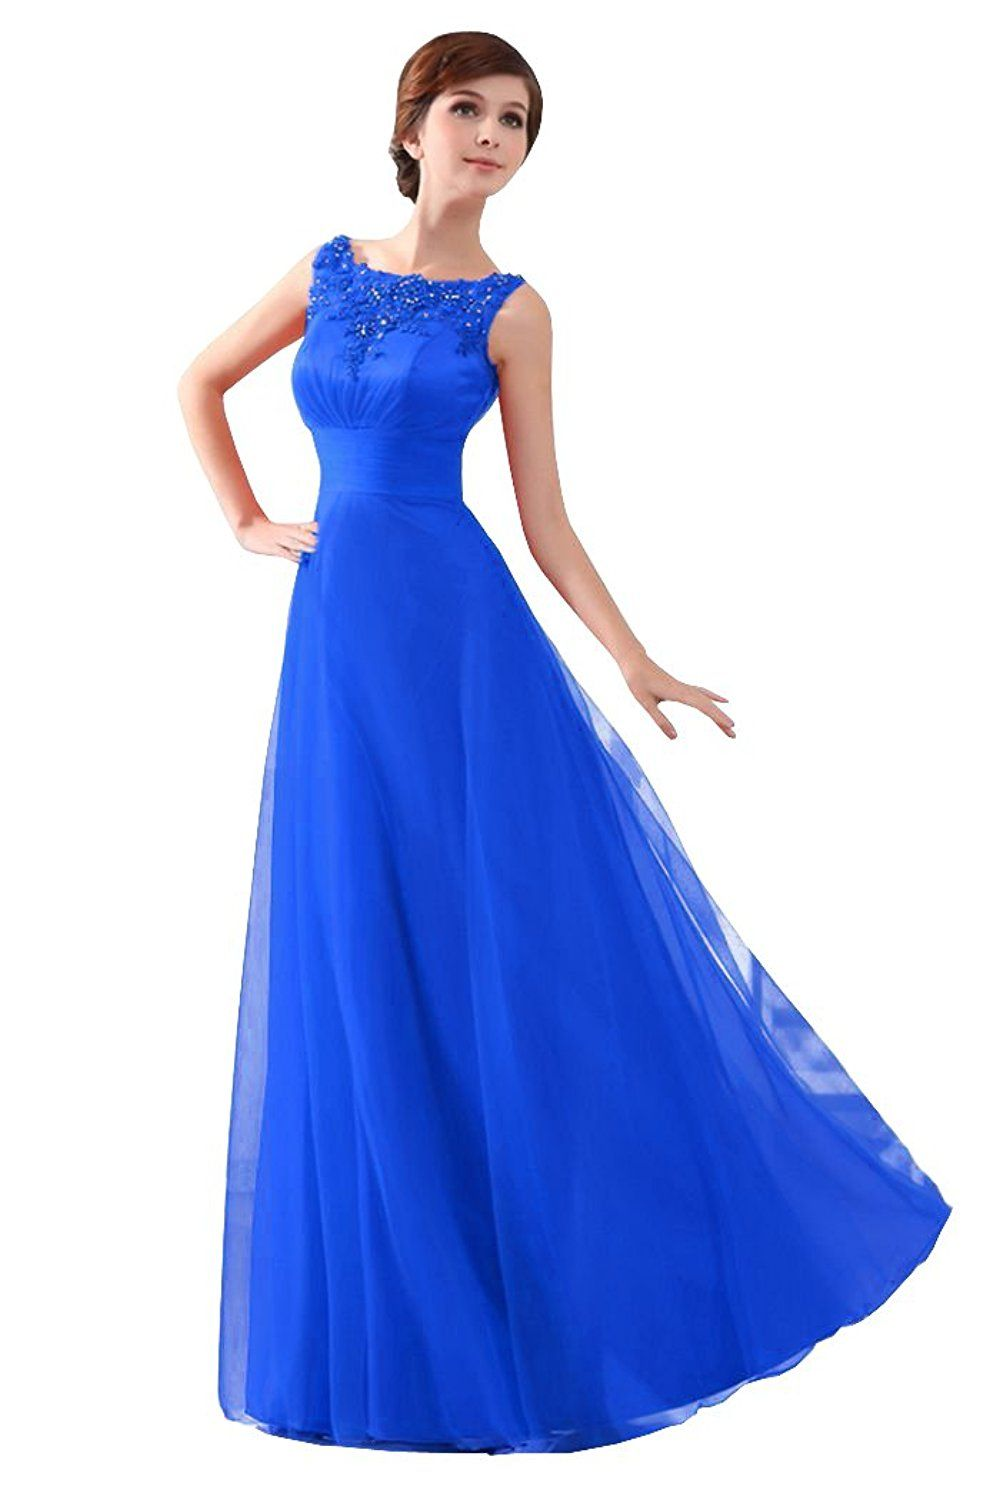 Beautyemily womens long formal evening dresses appliques party